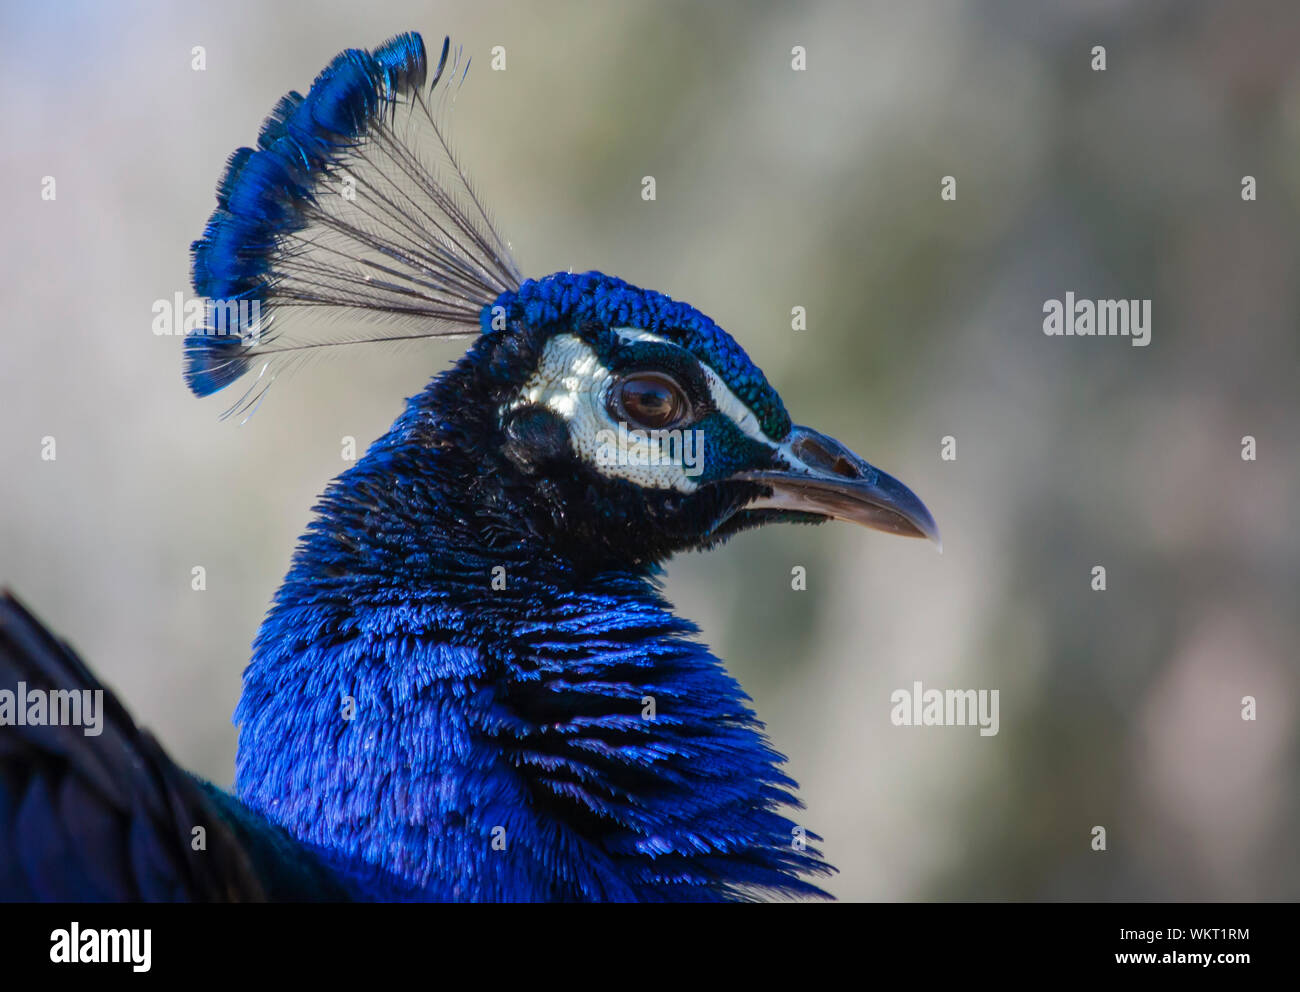 Blue Peacock or Indian peafowl a large and brilliantly coloured birds with a fan-like crest of feathers when on display during courtship Stock Photo